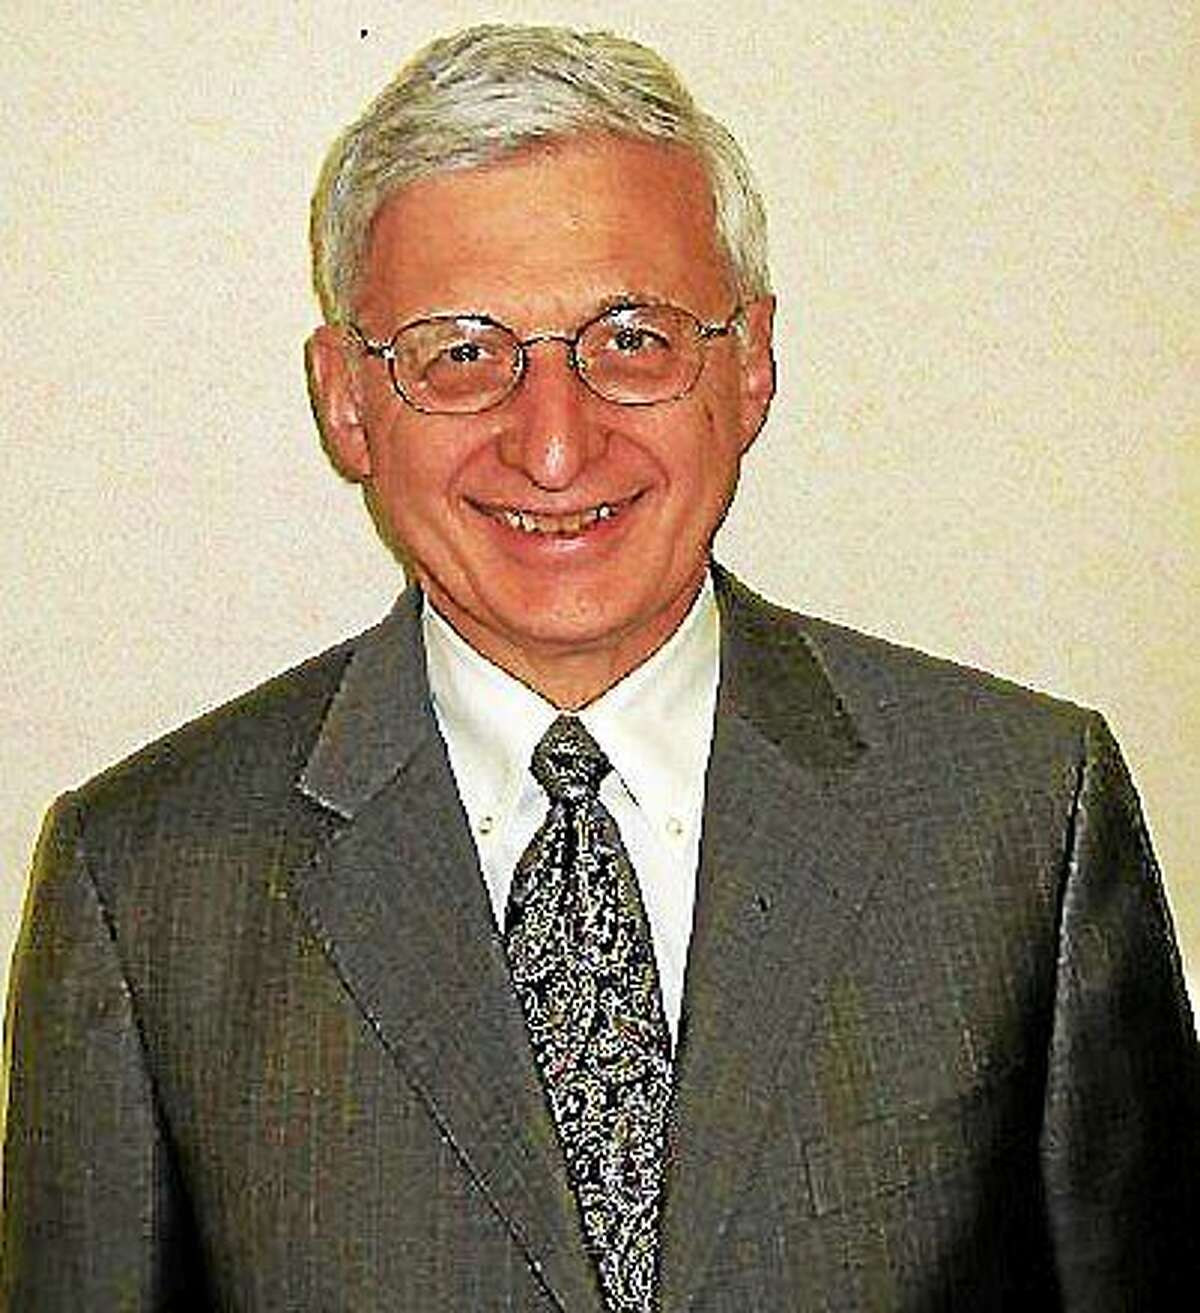 Ken Merz was The Register Citizen's Person of the Year for 2014.